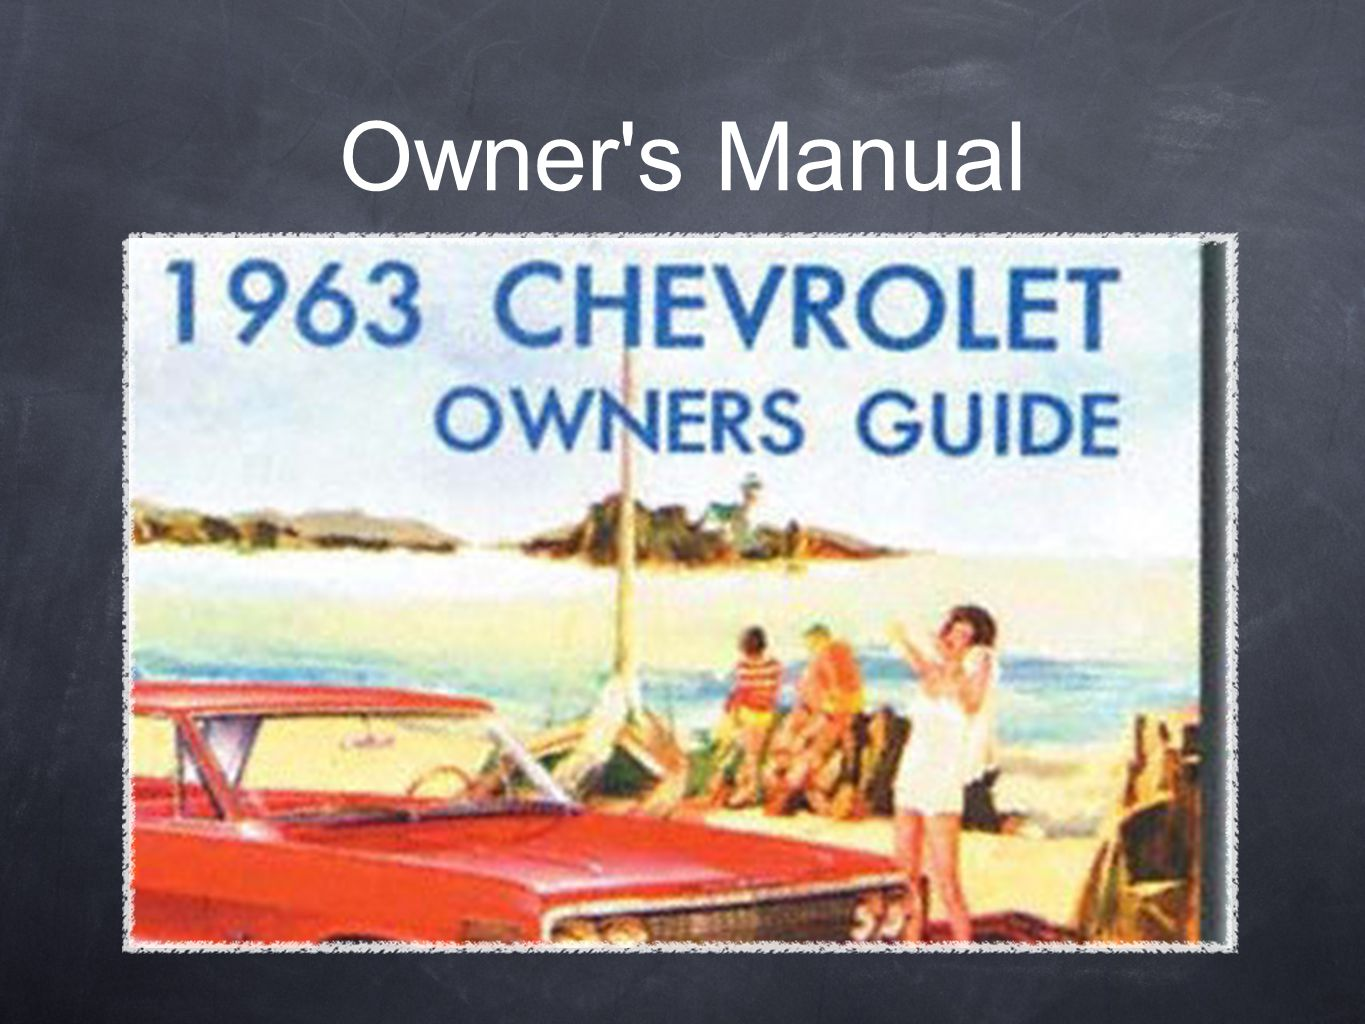 Owner s Manual Provides valuable information about your vehicle and it s systems